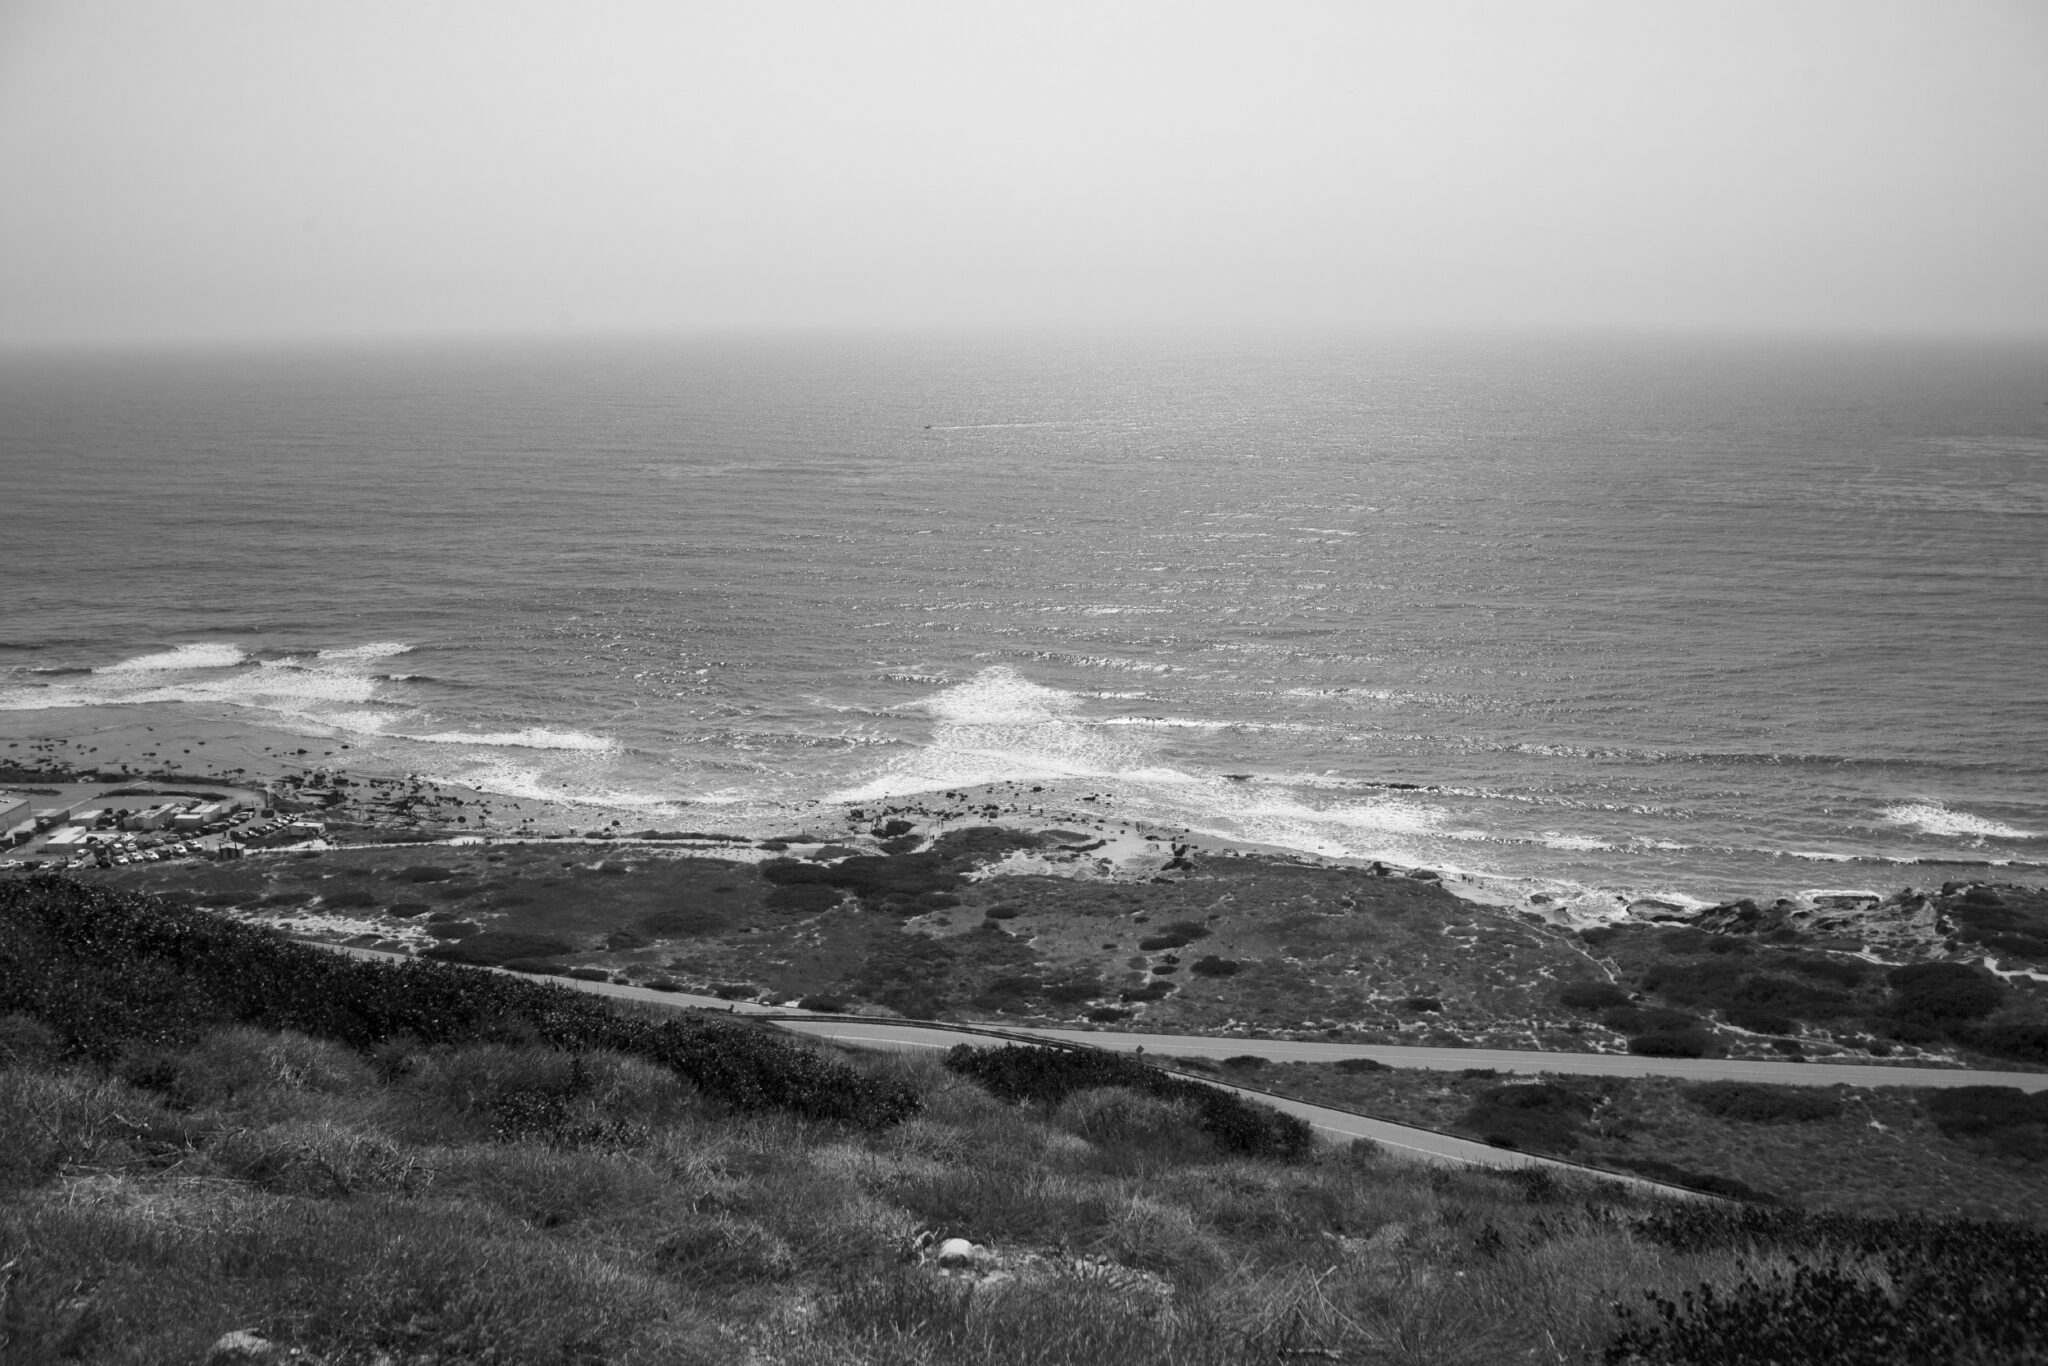 Stunning black and white image taken from the top of a mountain looking down to the ocean below and in the distance